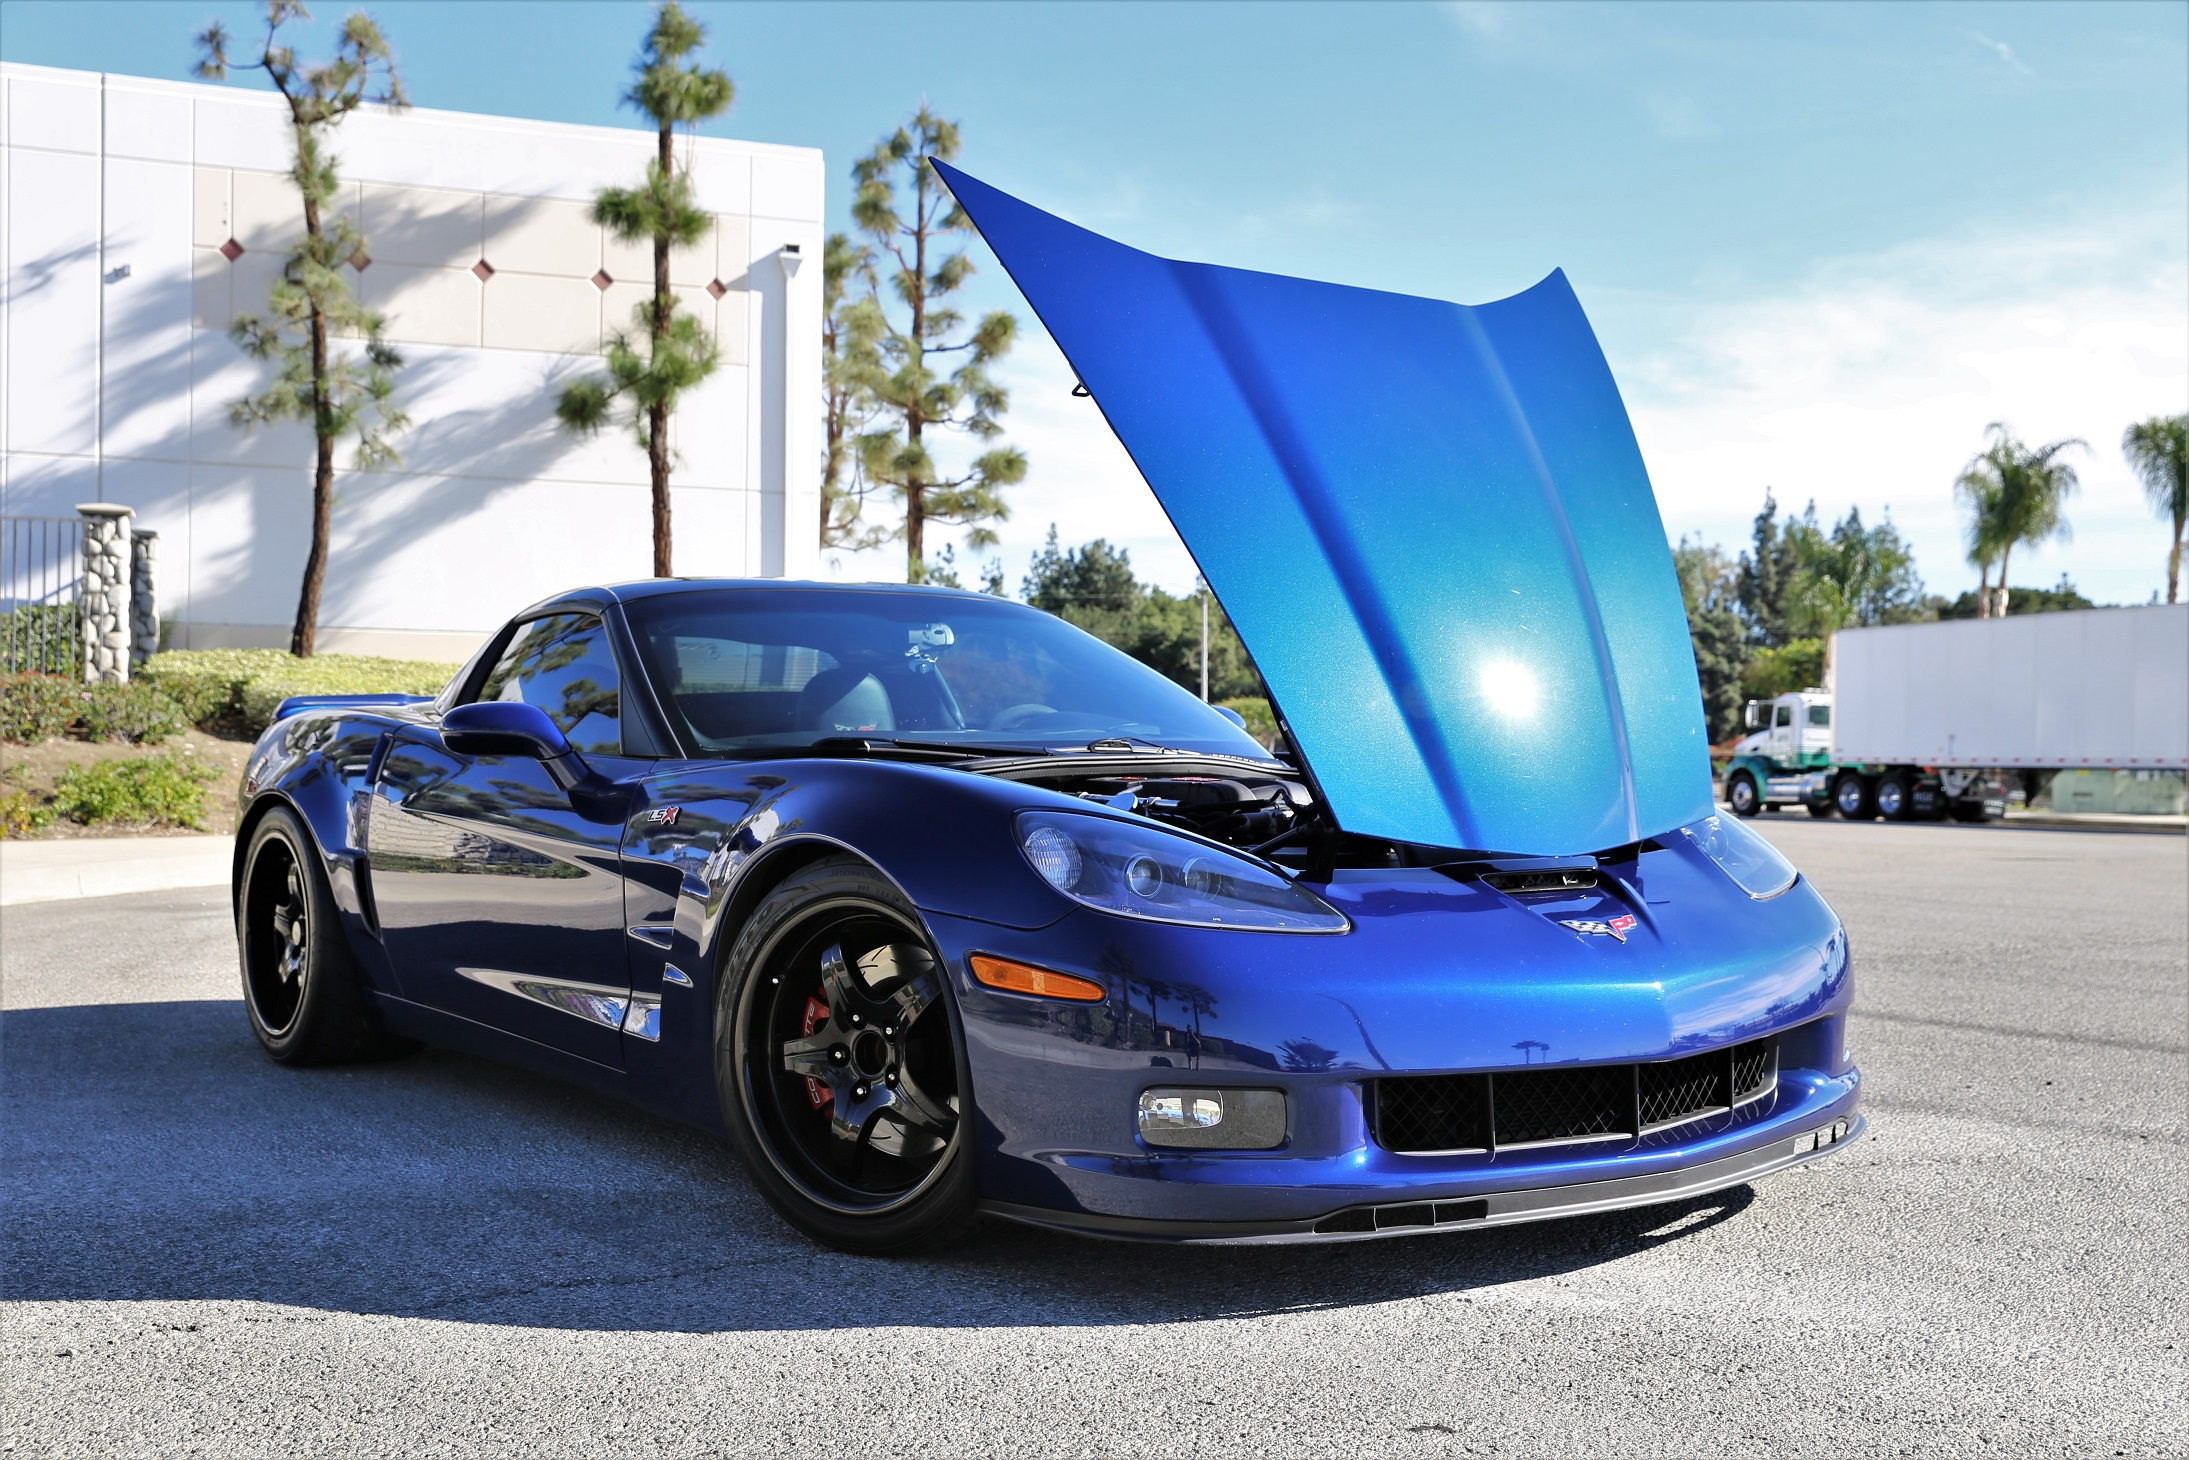 Fs 2007 Corvette C6 Zr1 Style Lsx 454 Motor Lemans Blue Ls2 Wiring Harness Im A Motivated Seller But In Not Major Rush To Sell Please Dont Waste Your Time Or Mine With Ridiculous Offers